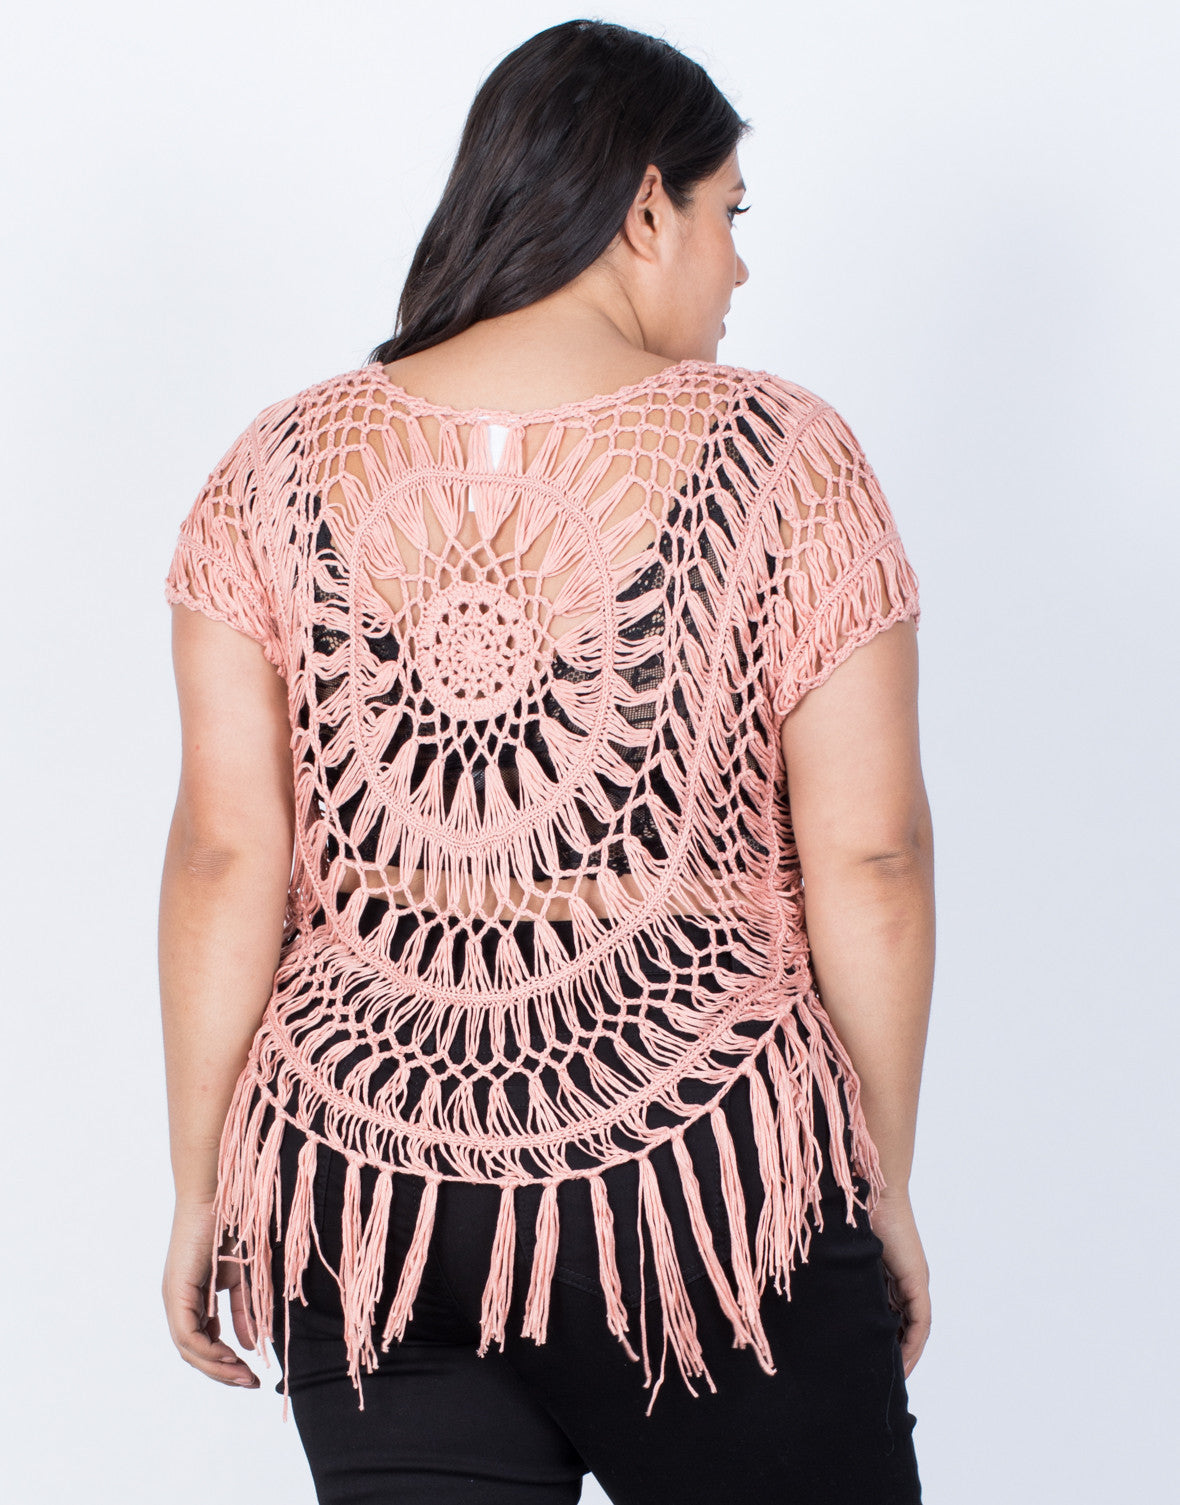 Rose PInk Plus Size Breezy Crochet Top - Back View